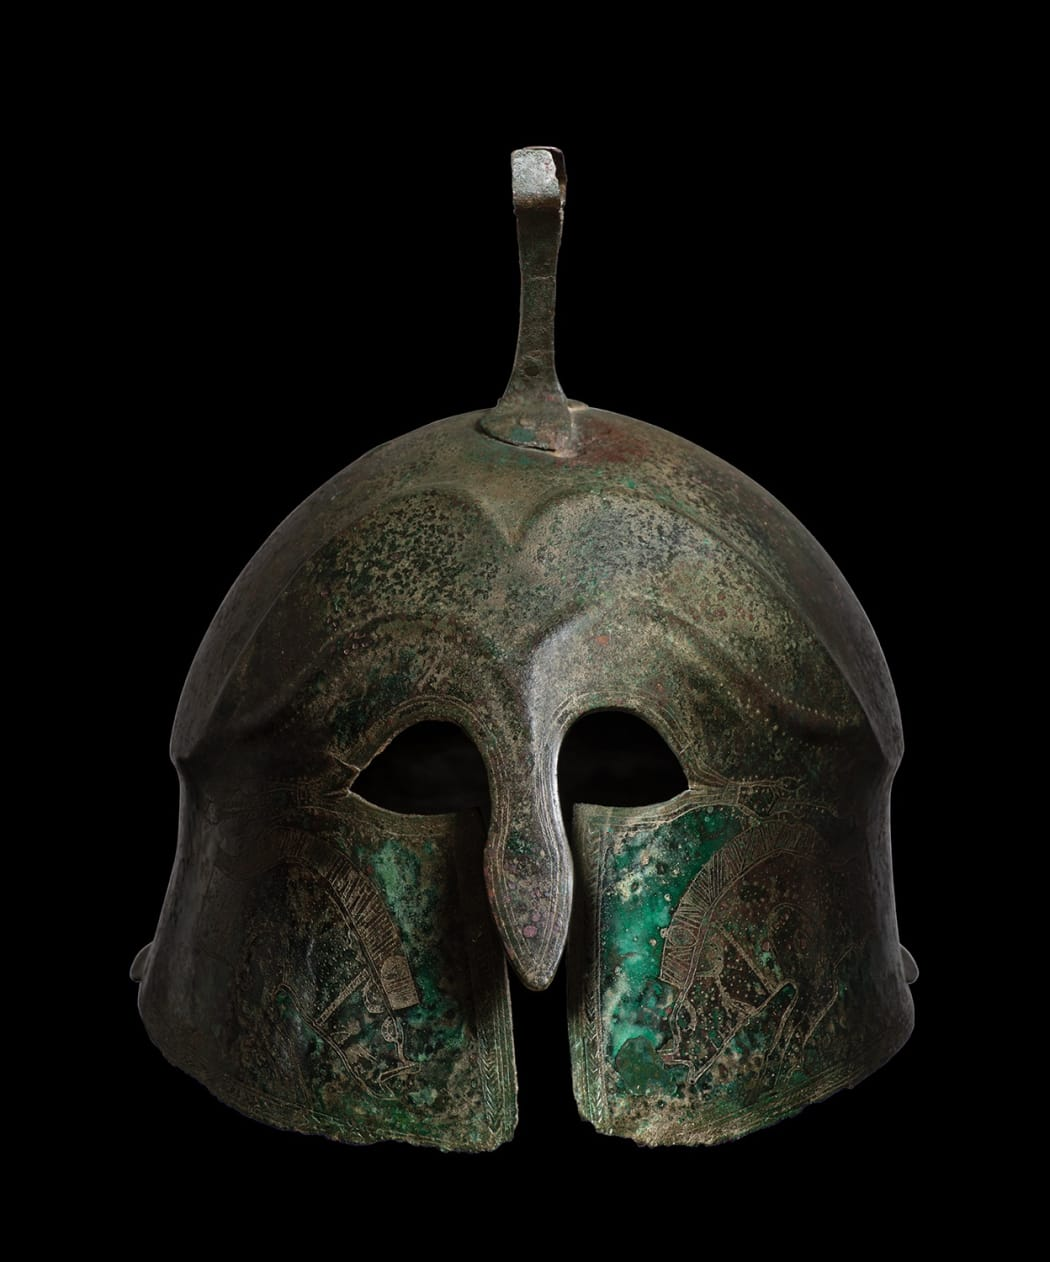 A GREEK BRONZE HELMET OF PSEUDO-CORINTHIAN TYPE, late 6th - early 5th century BC